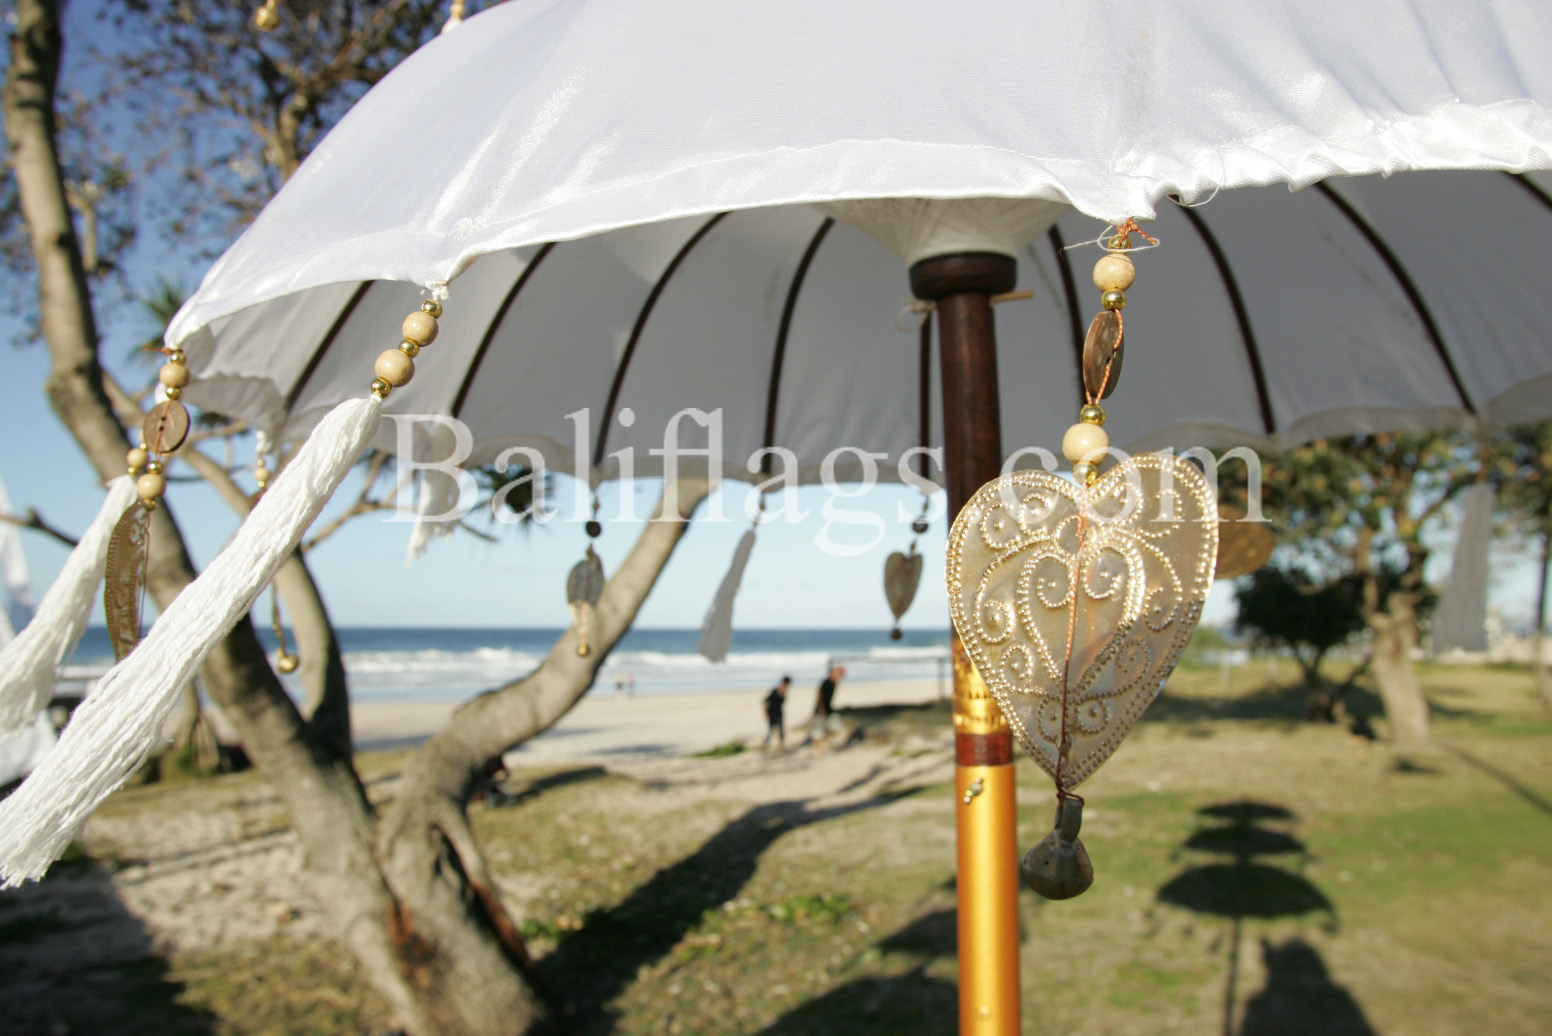 Bali-Wedding-Umbrella